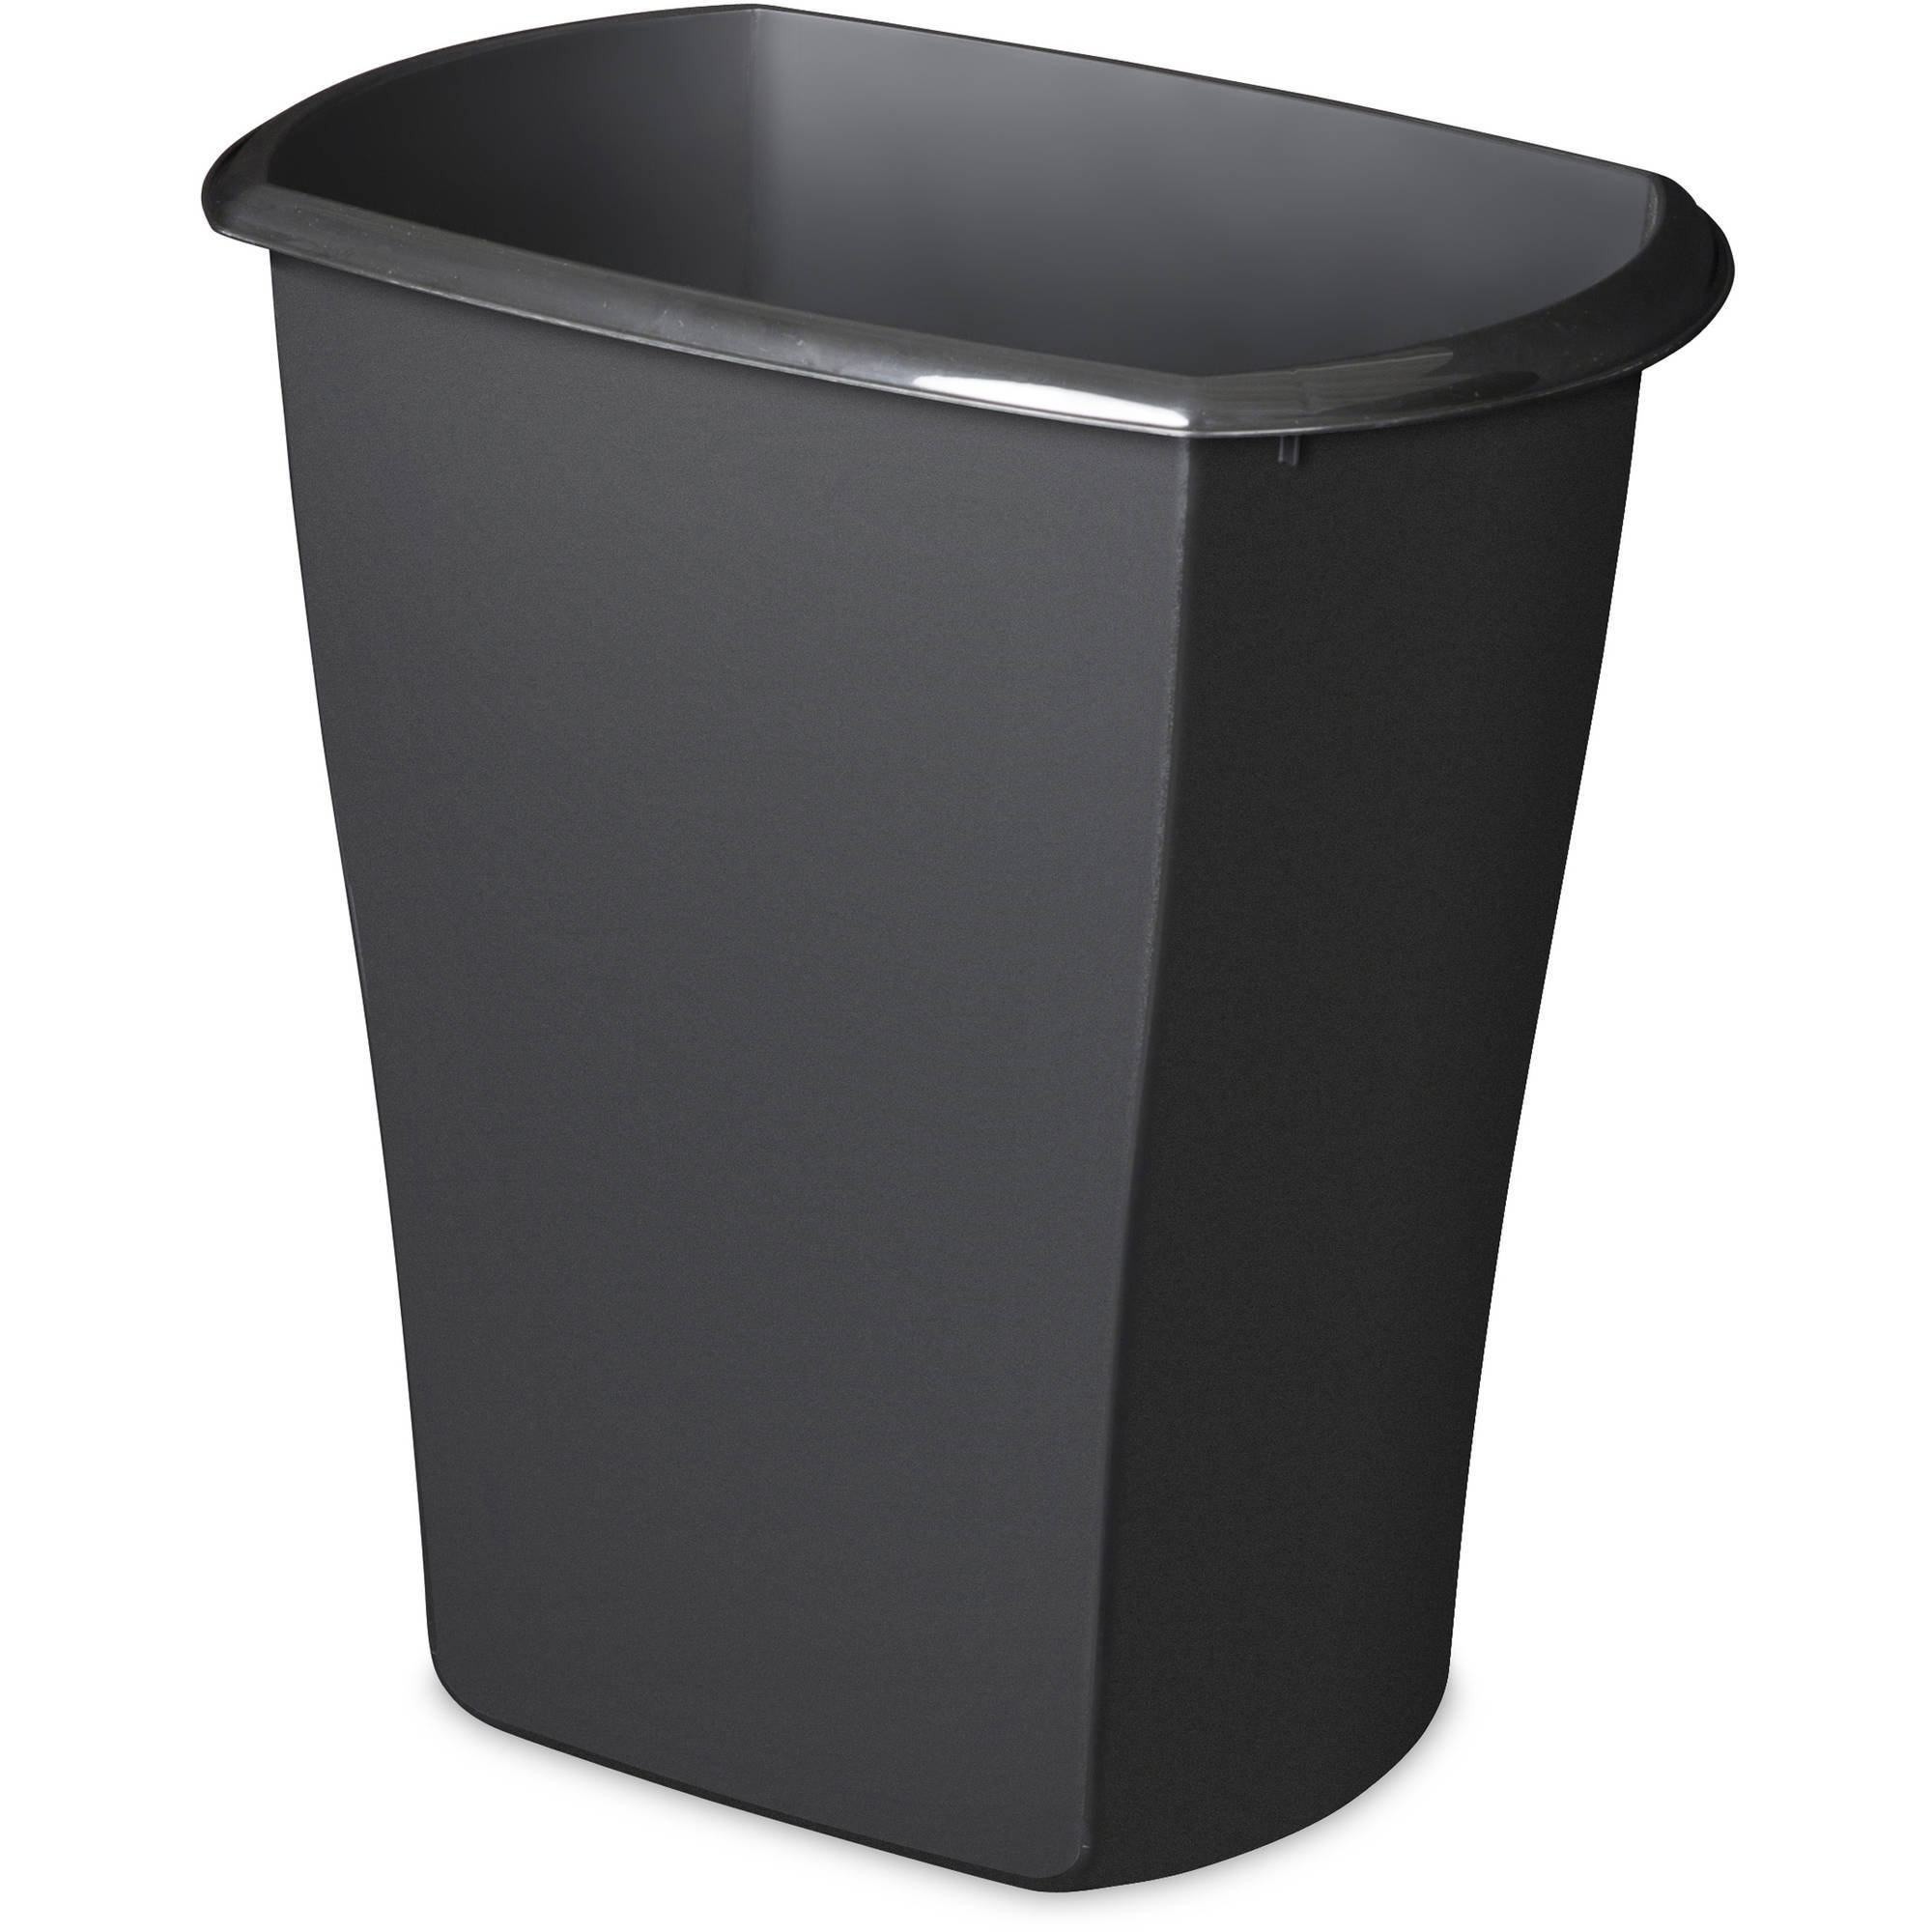 Sterilite Corporation Mainstays 10 Gallon Rectangular Wastebasket -  Multiple Colors (Available in Case of 6 or Single Unit)